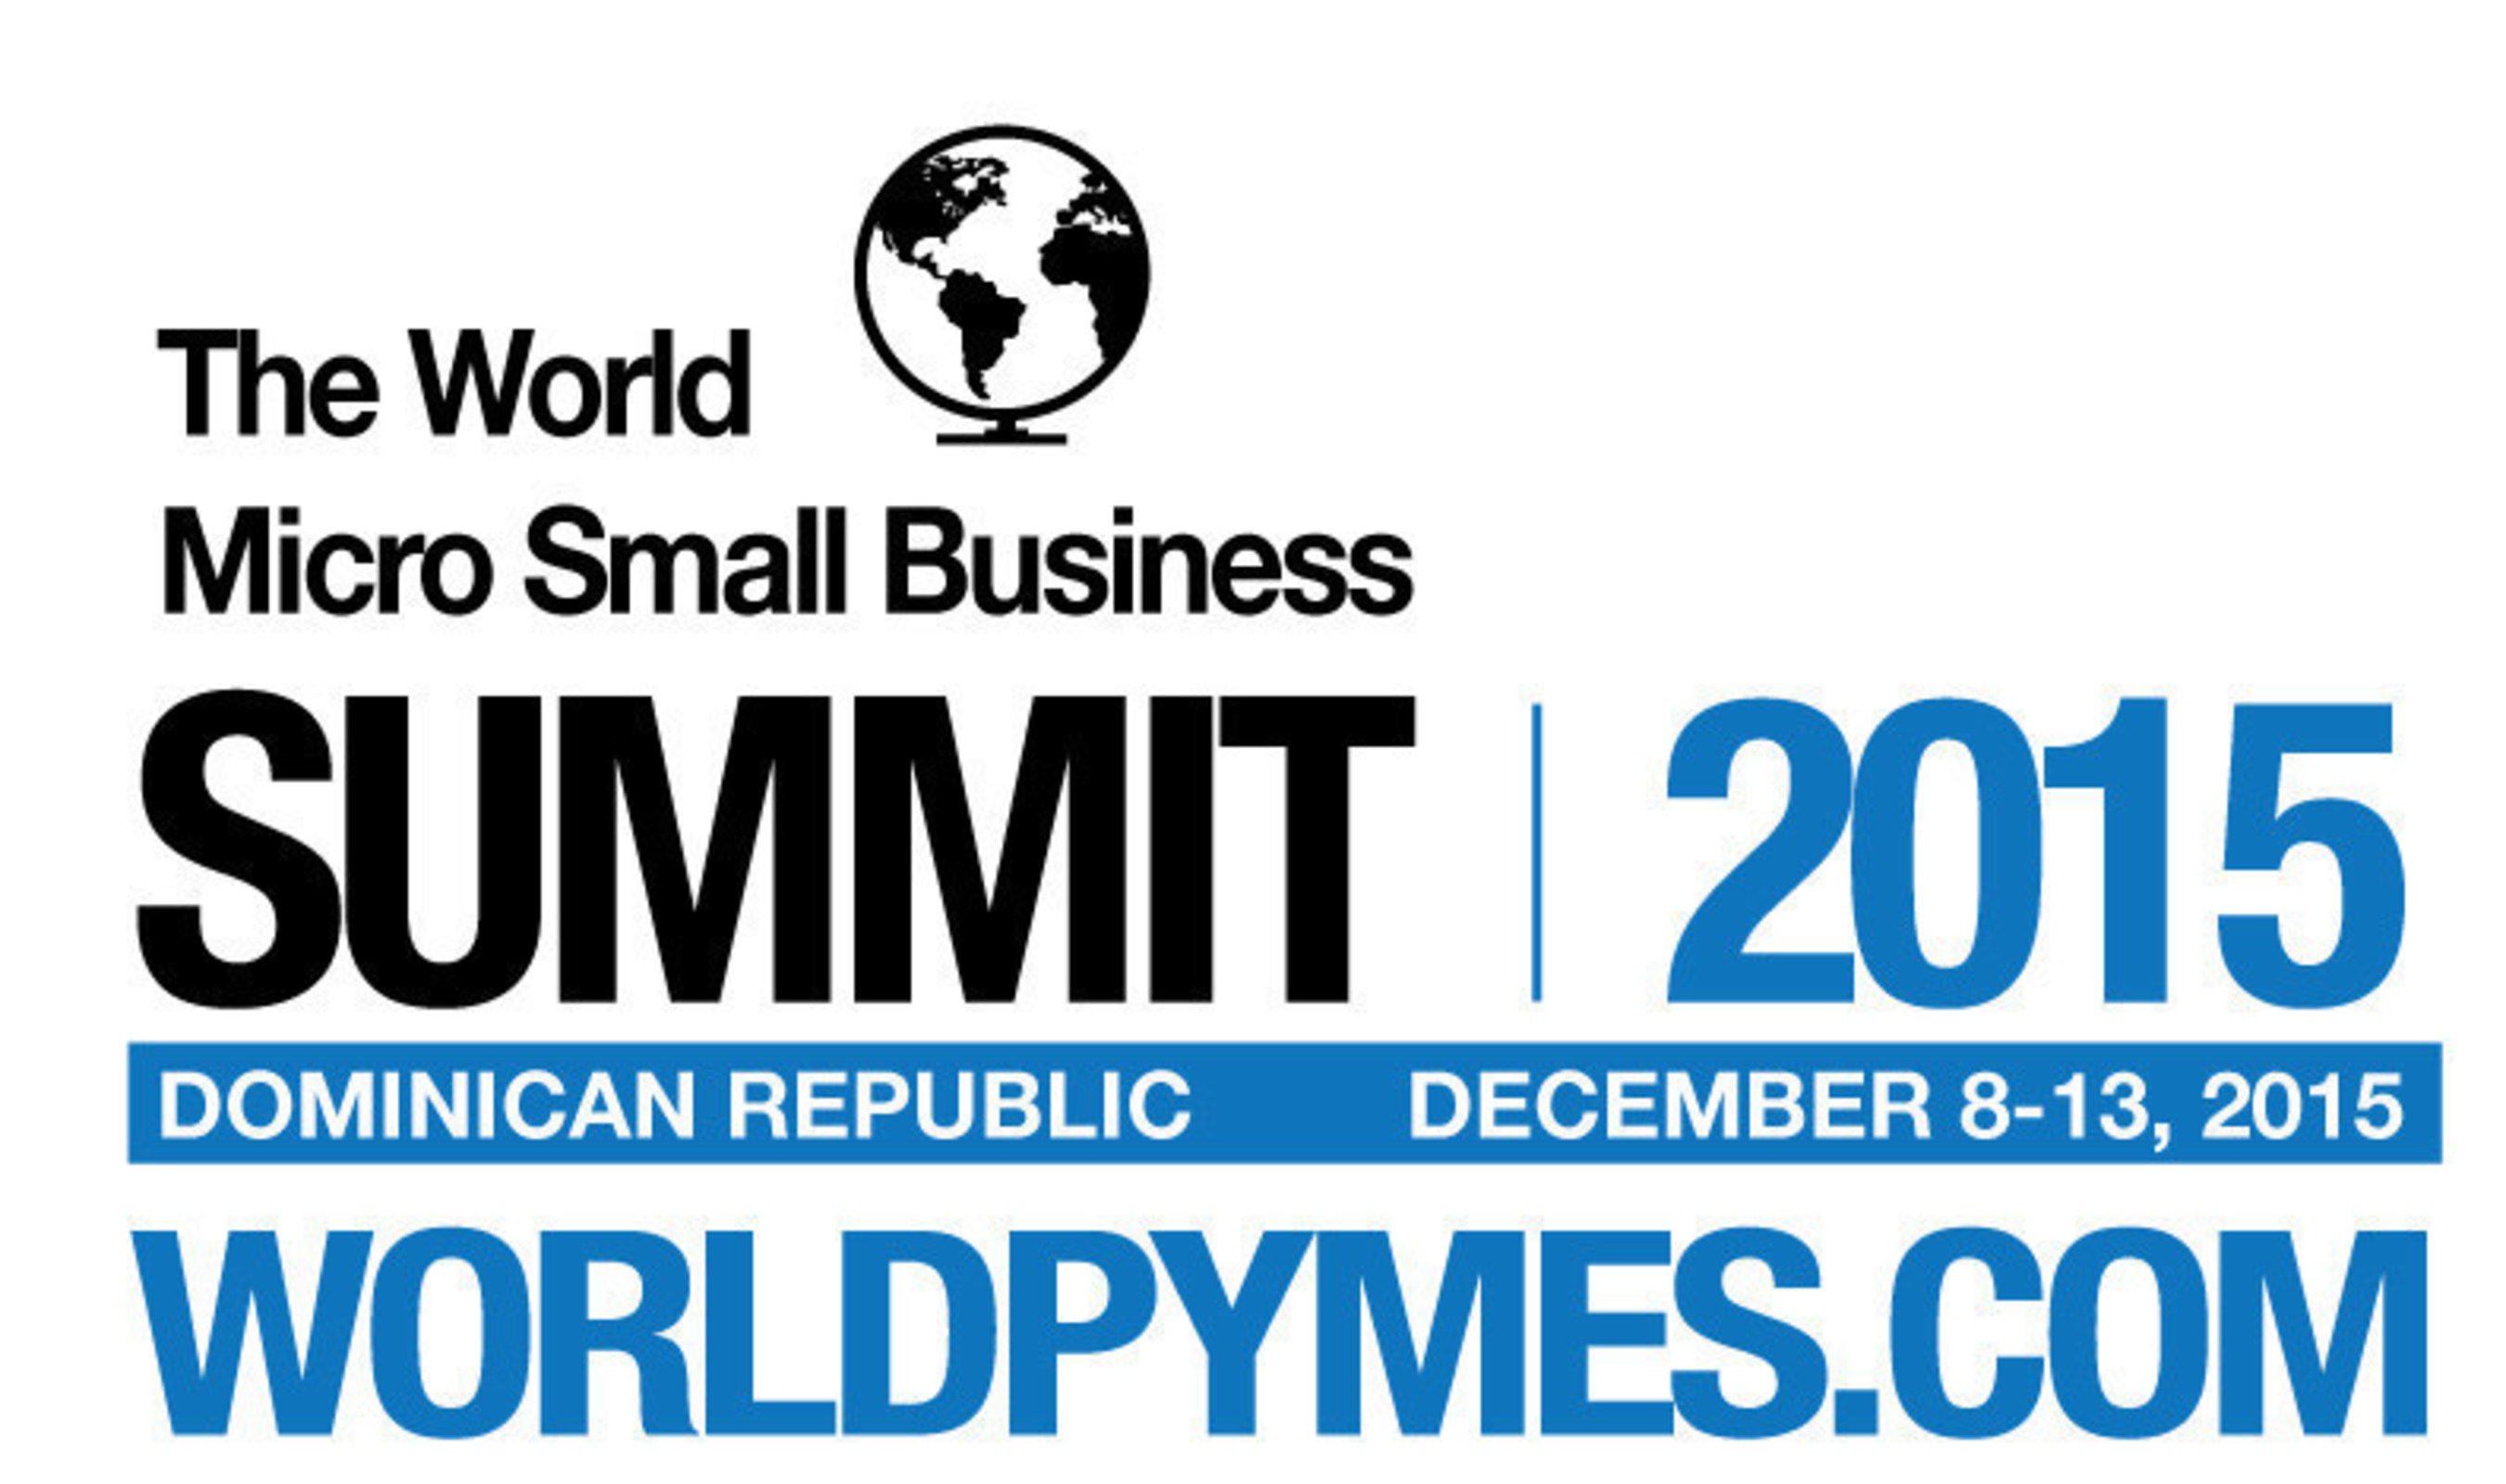 The Minority Chamber of Commerce announces the launch of the Global XIV Summit of the Micro and Small Business 2015 in the Dominican Republic, the cradle of entrepreneurs